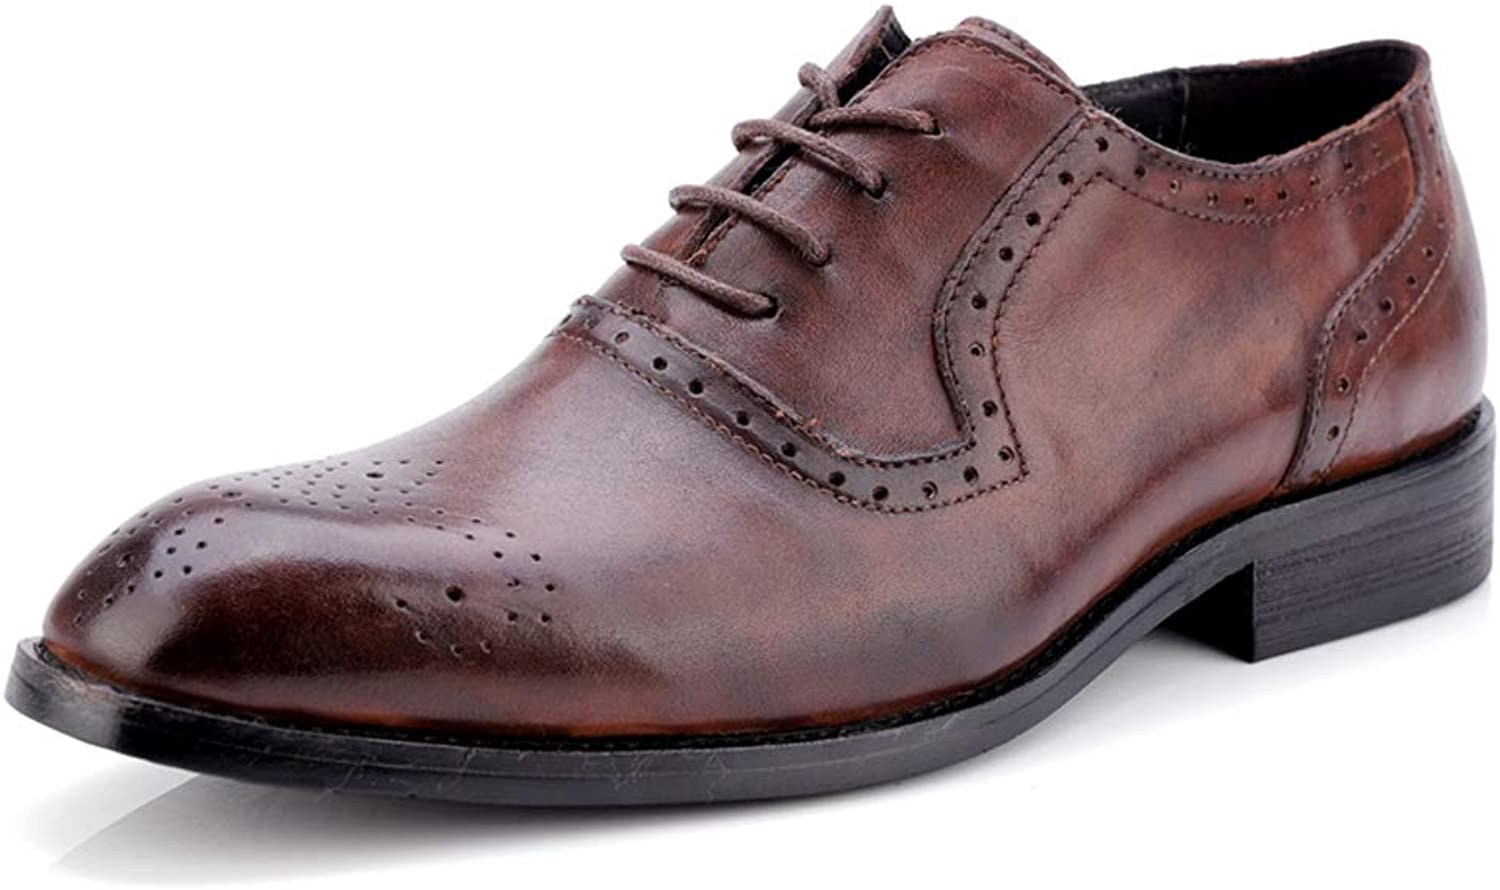 Men's Business Oxford Casual Classic color and Carved Breathable Brogue shoes